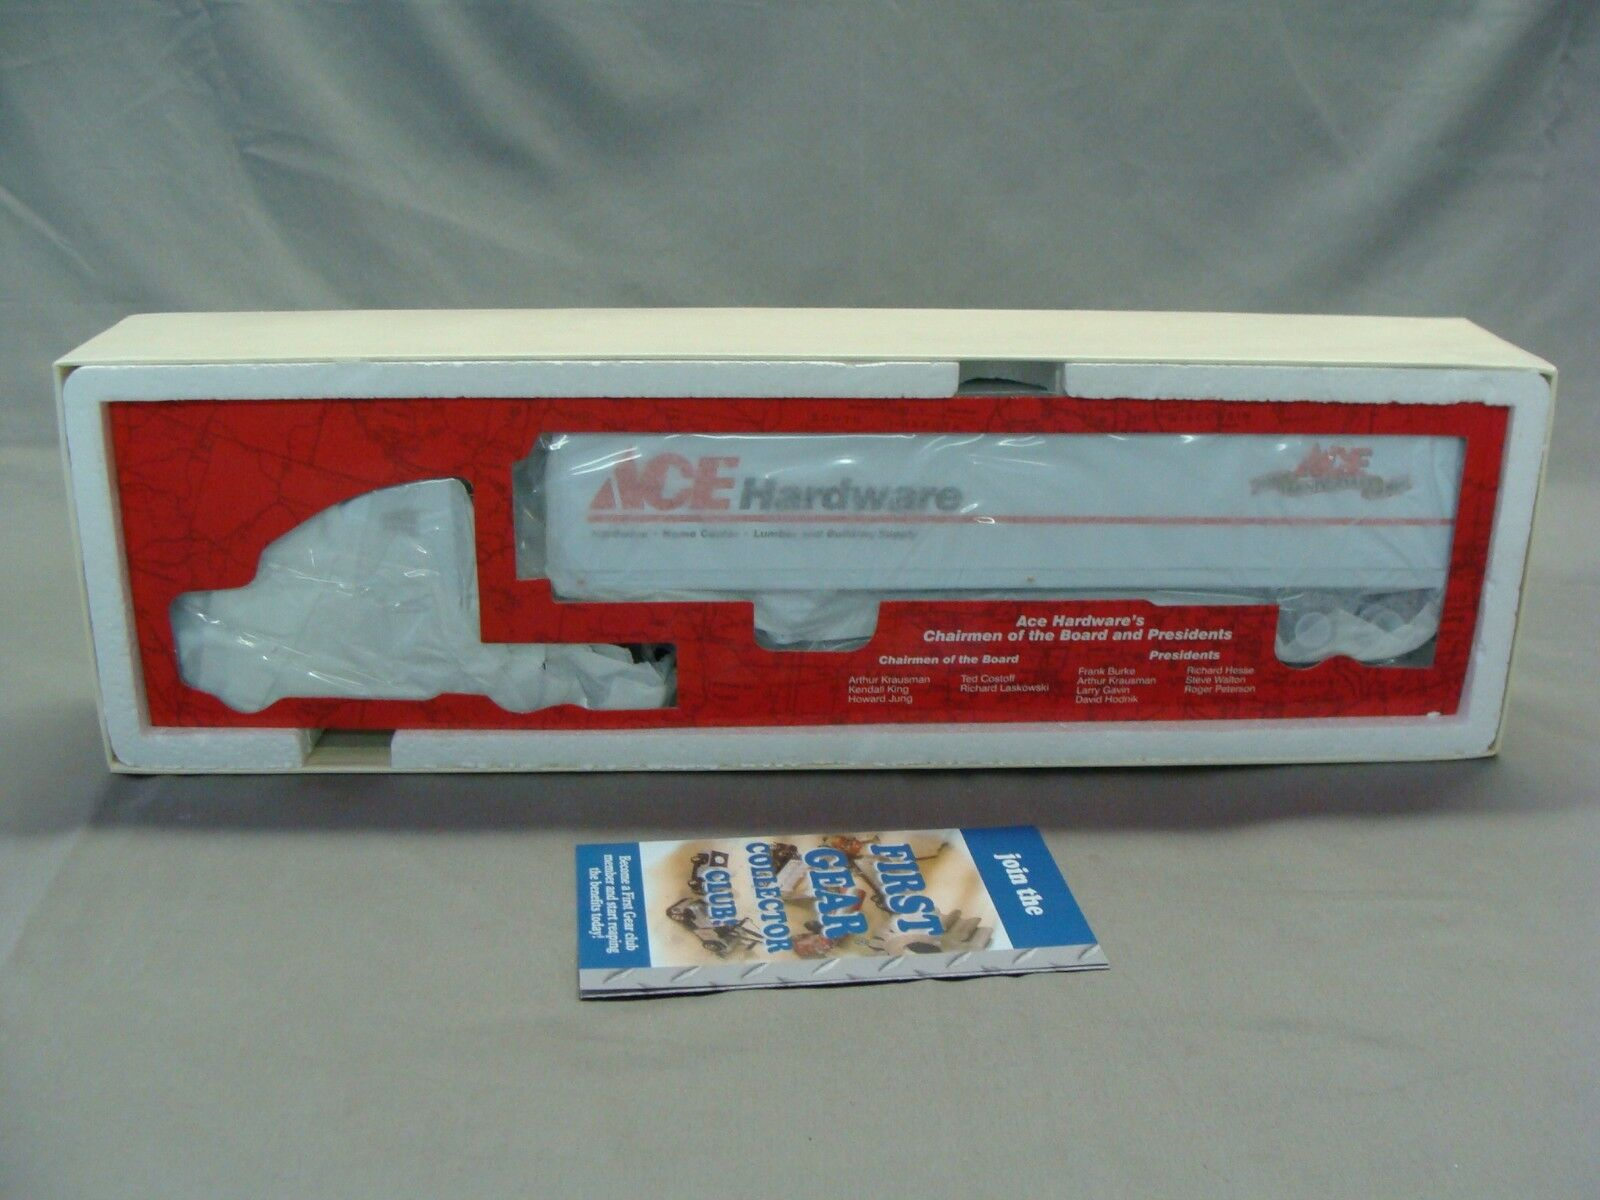 1999 Ace Hardware 75th Anniversary Freightliner Tractor Trailer Toy Truck, 1 54